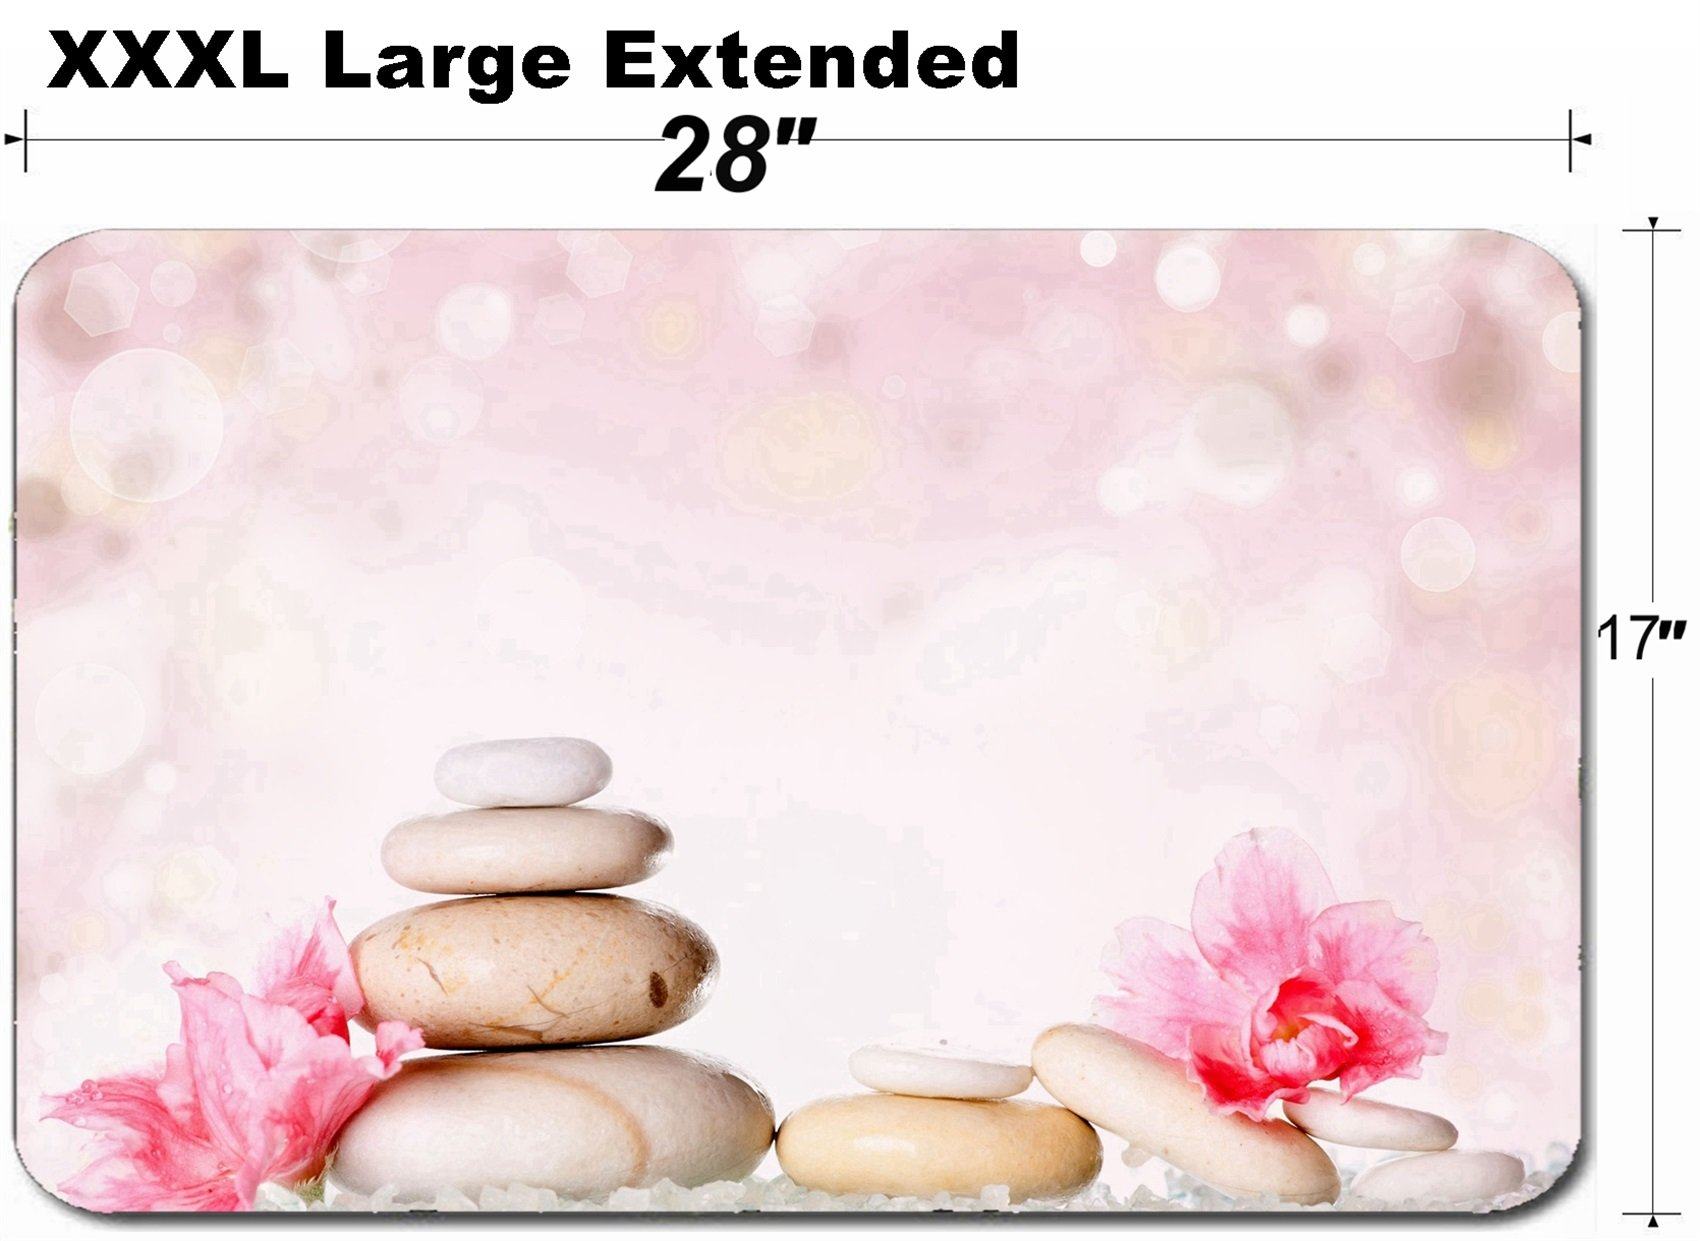 MSD Large Table Mat Non-Slip Natural Rubber Desk Pads Image ID 25083952 Spa Stones and Pink Flower on Abstract Background